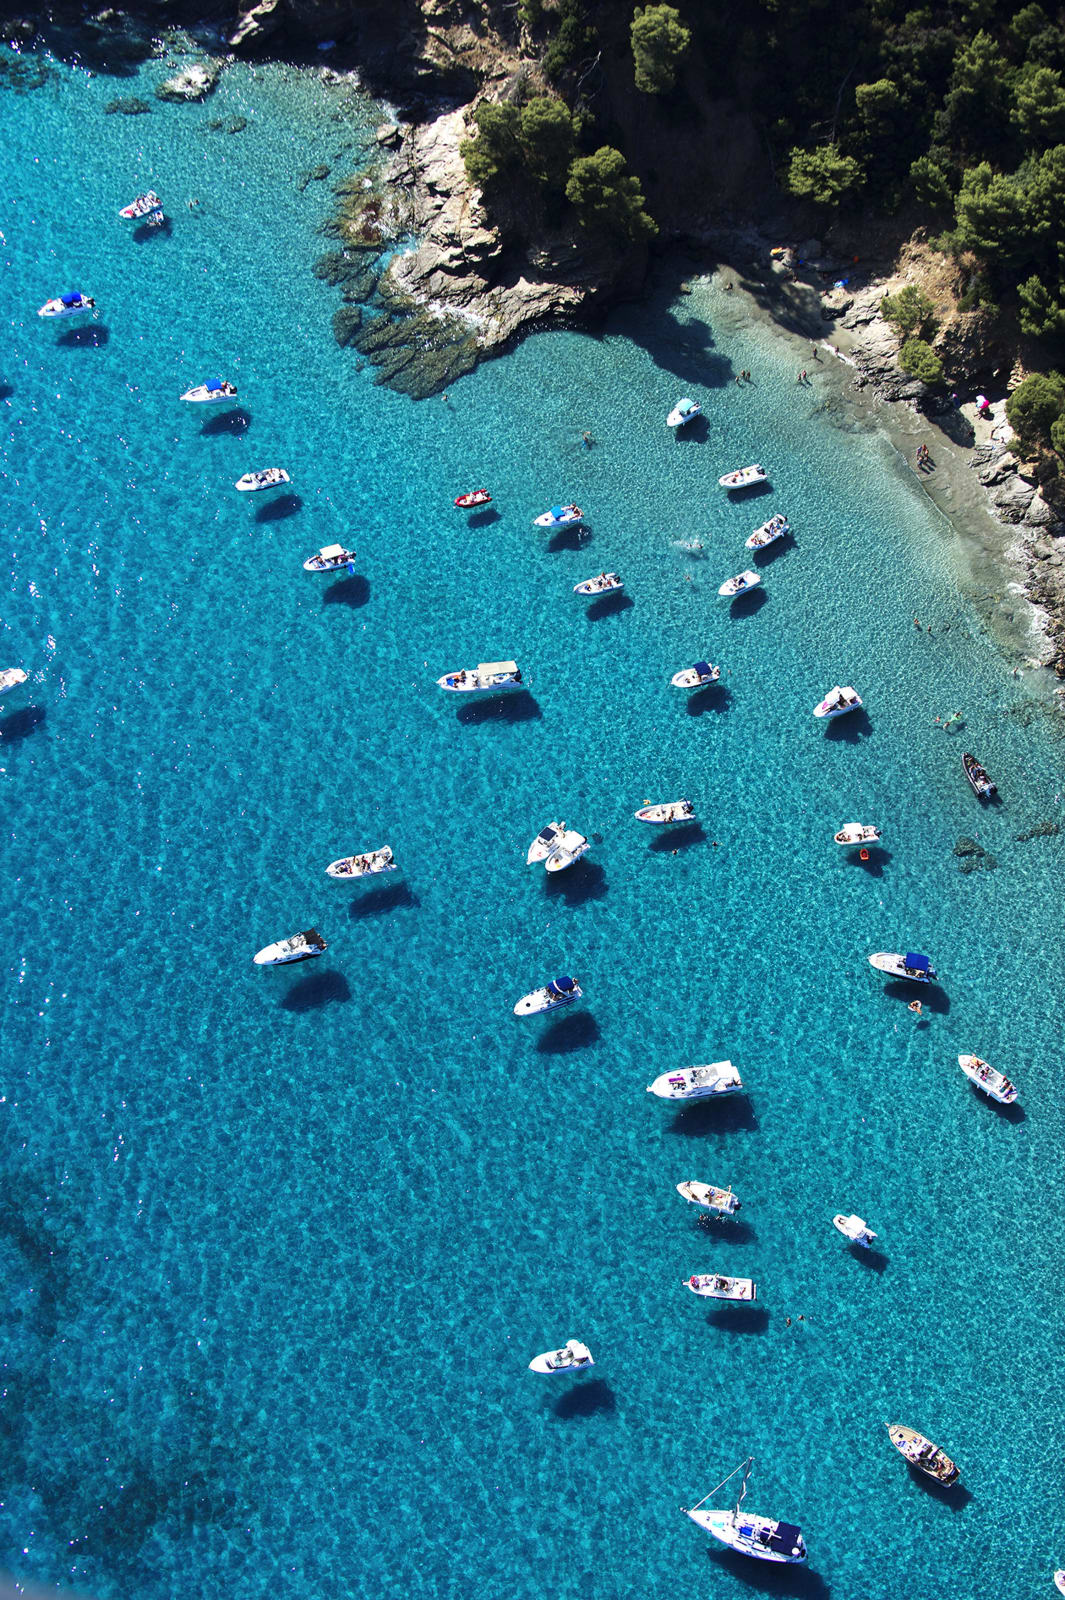 Boats in Cove